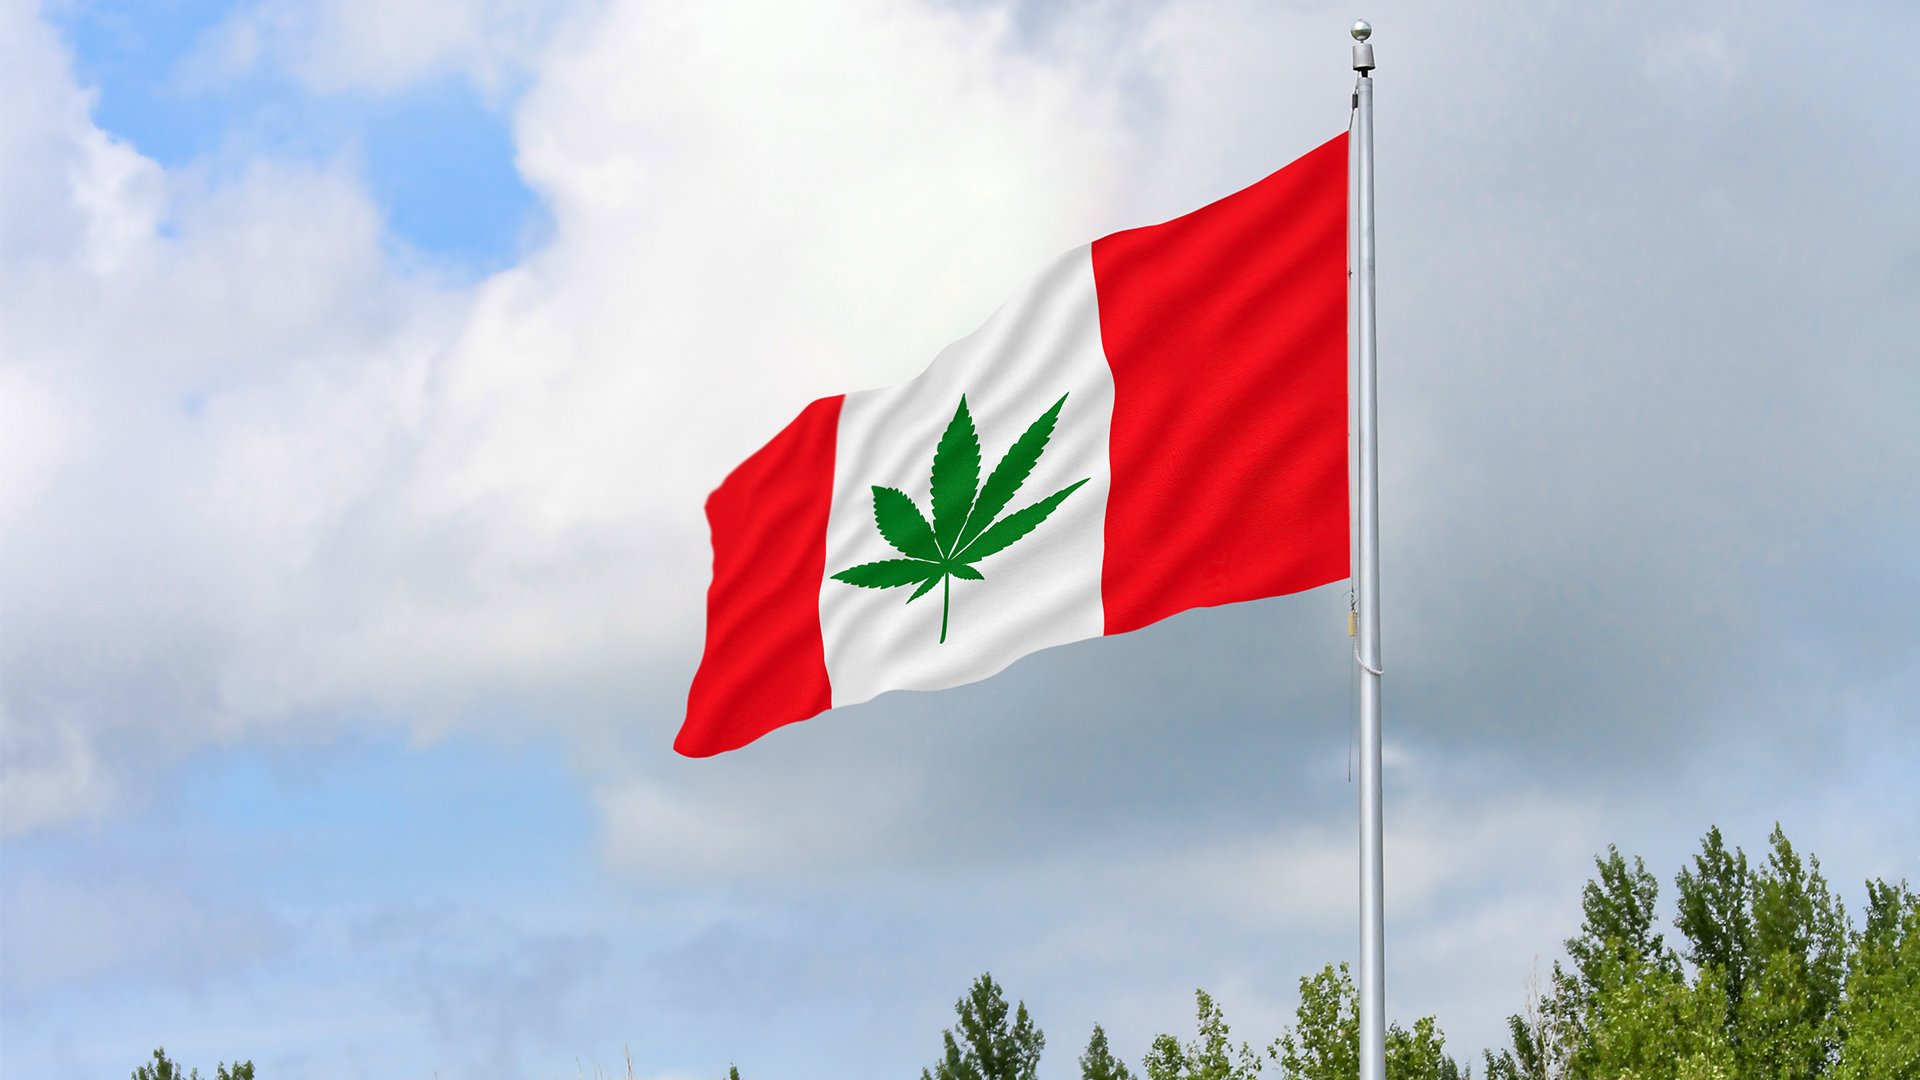 canada weed laws 2020